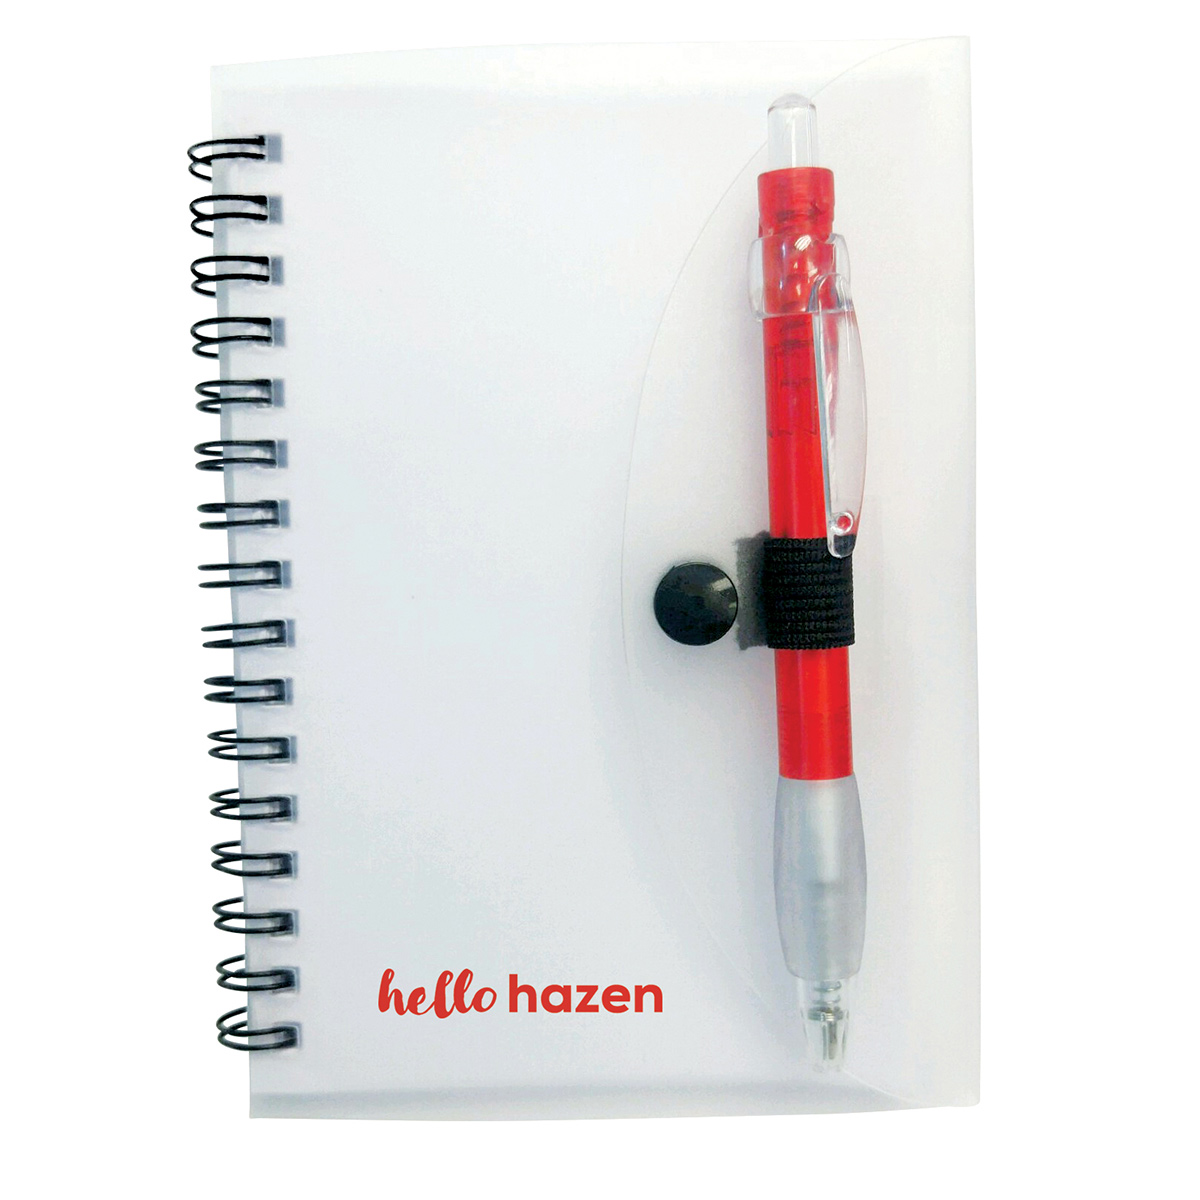 Spiral Notebook with Cardinal Pen